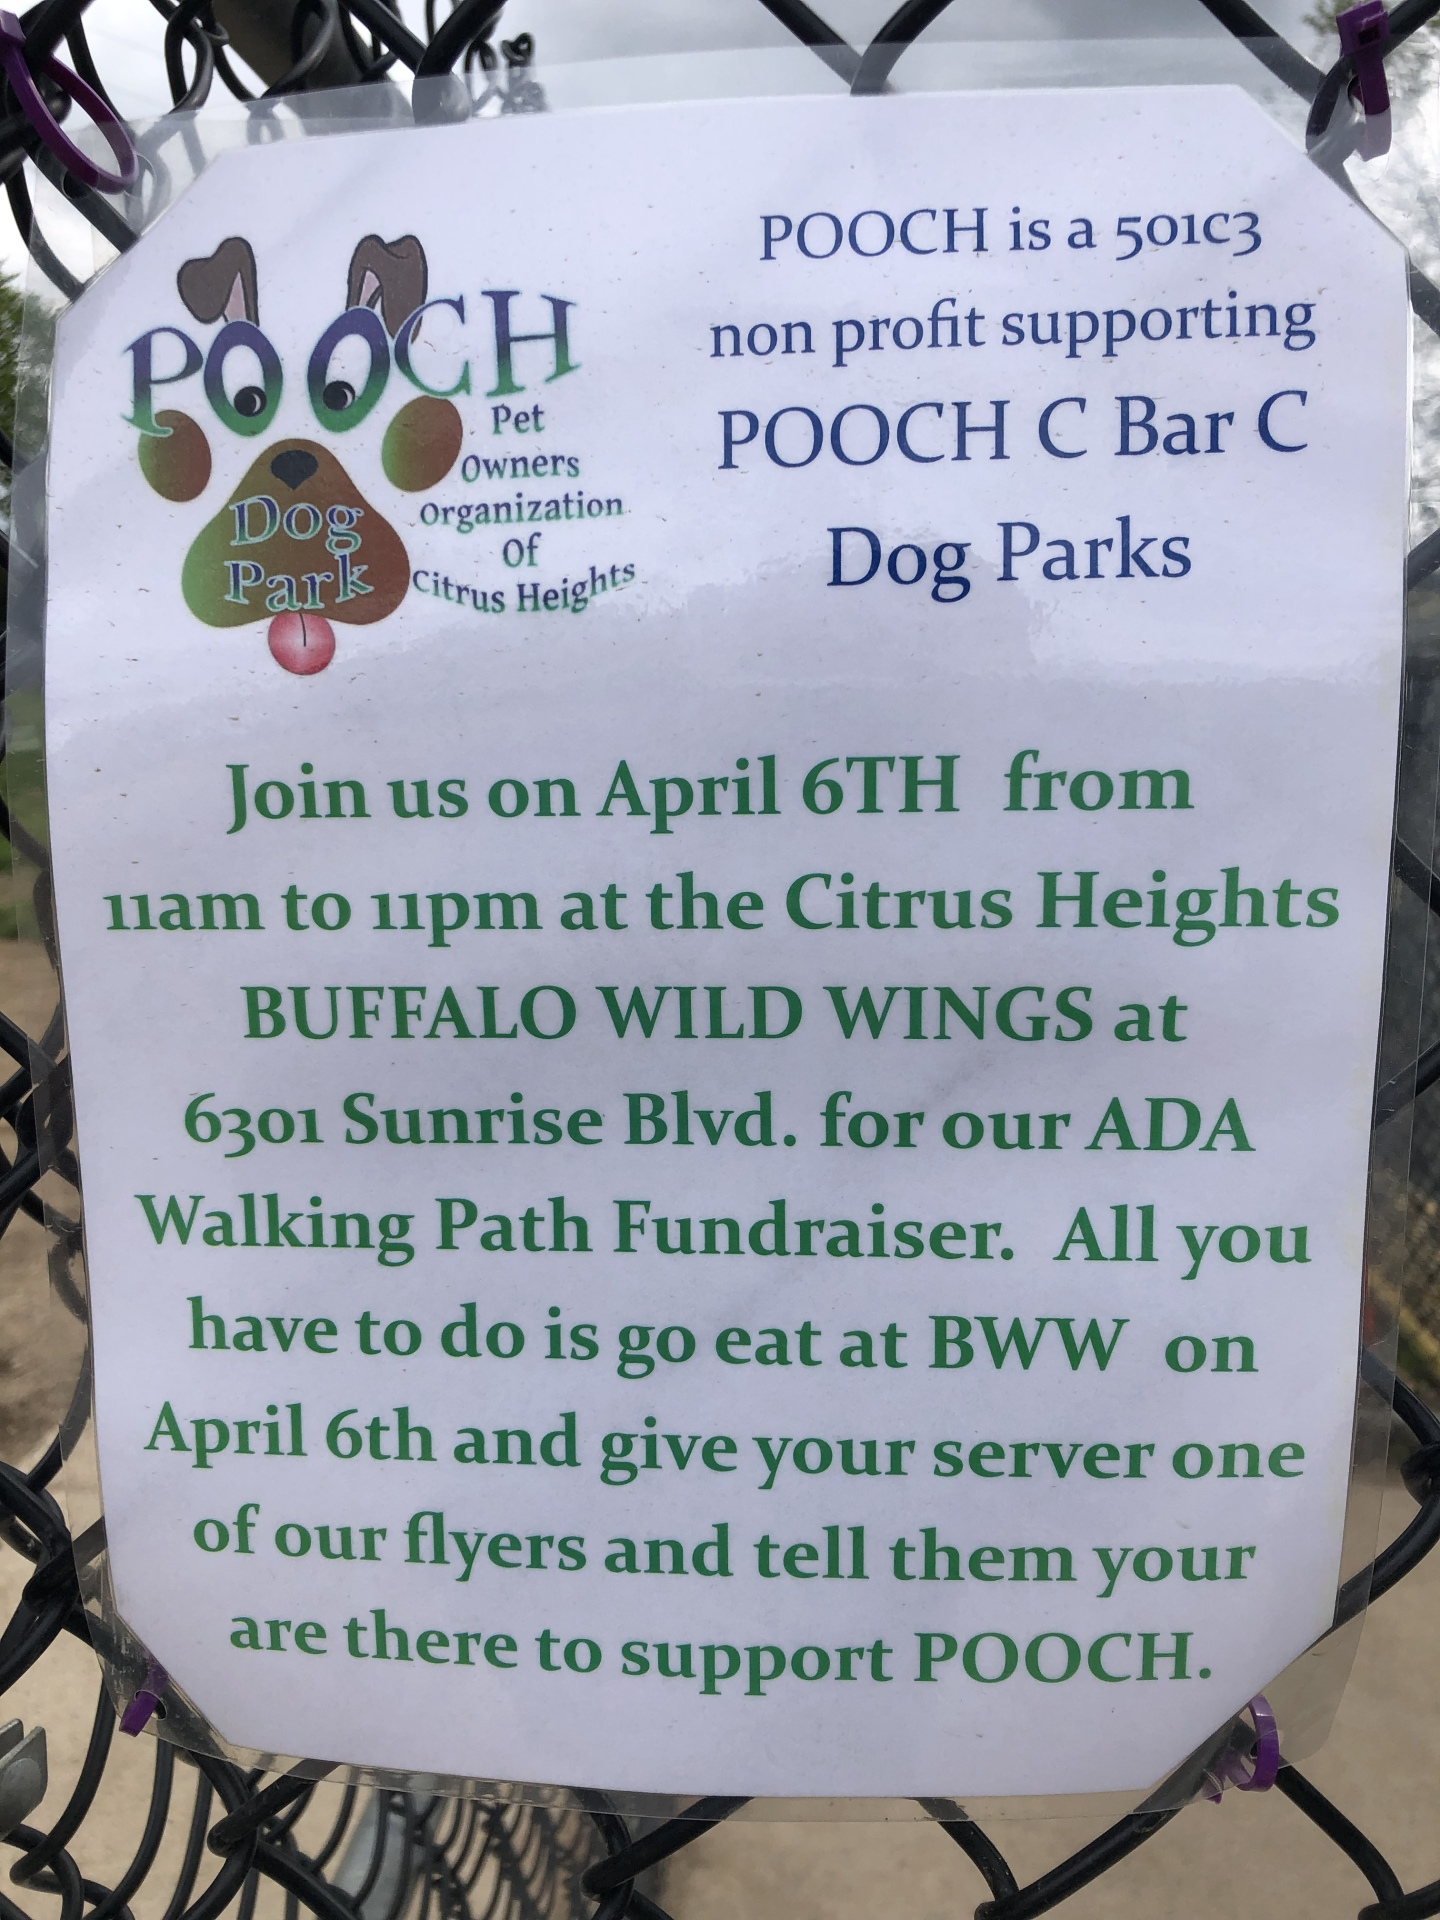 POOCH Fundraiser April 6, 2019